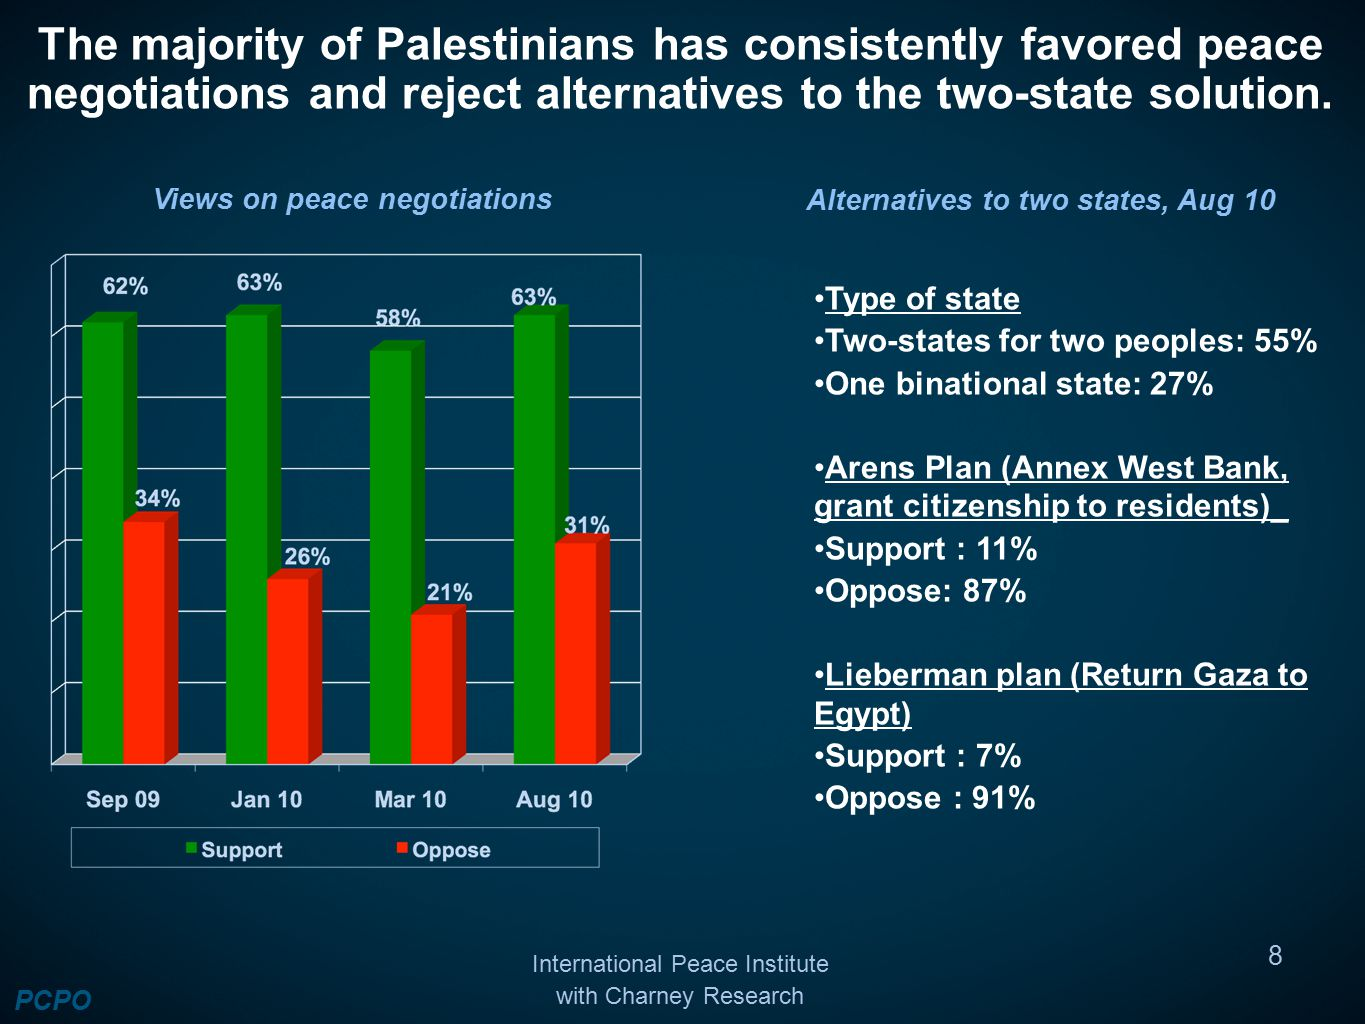 The majority of Palestinians has consistently favored peace negotiations and reject alternatives to the two-state solution.